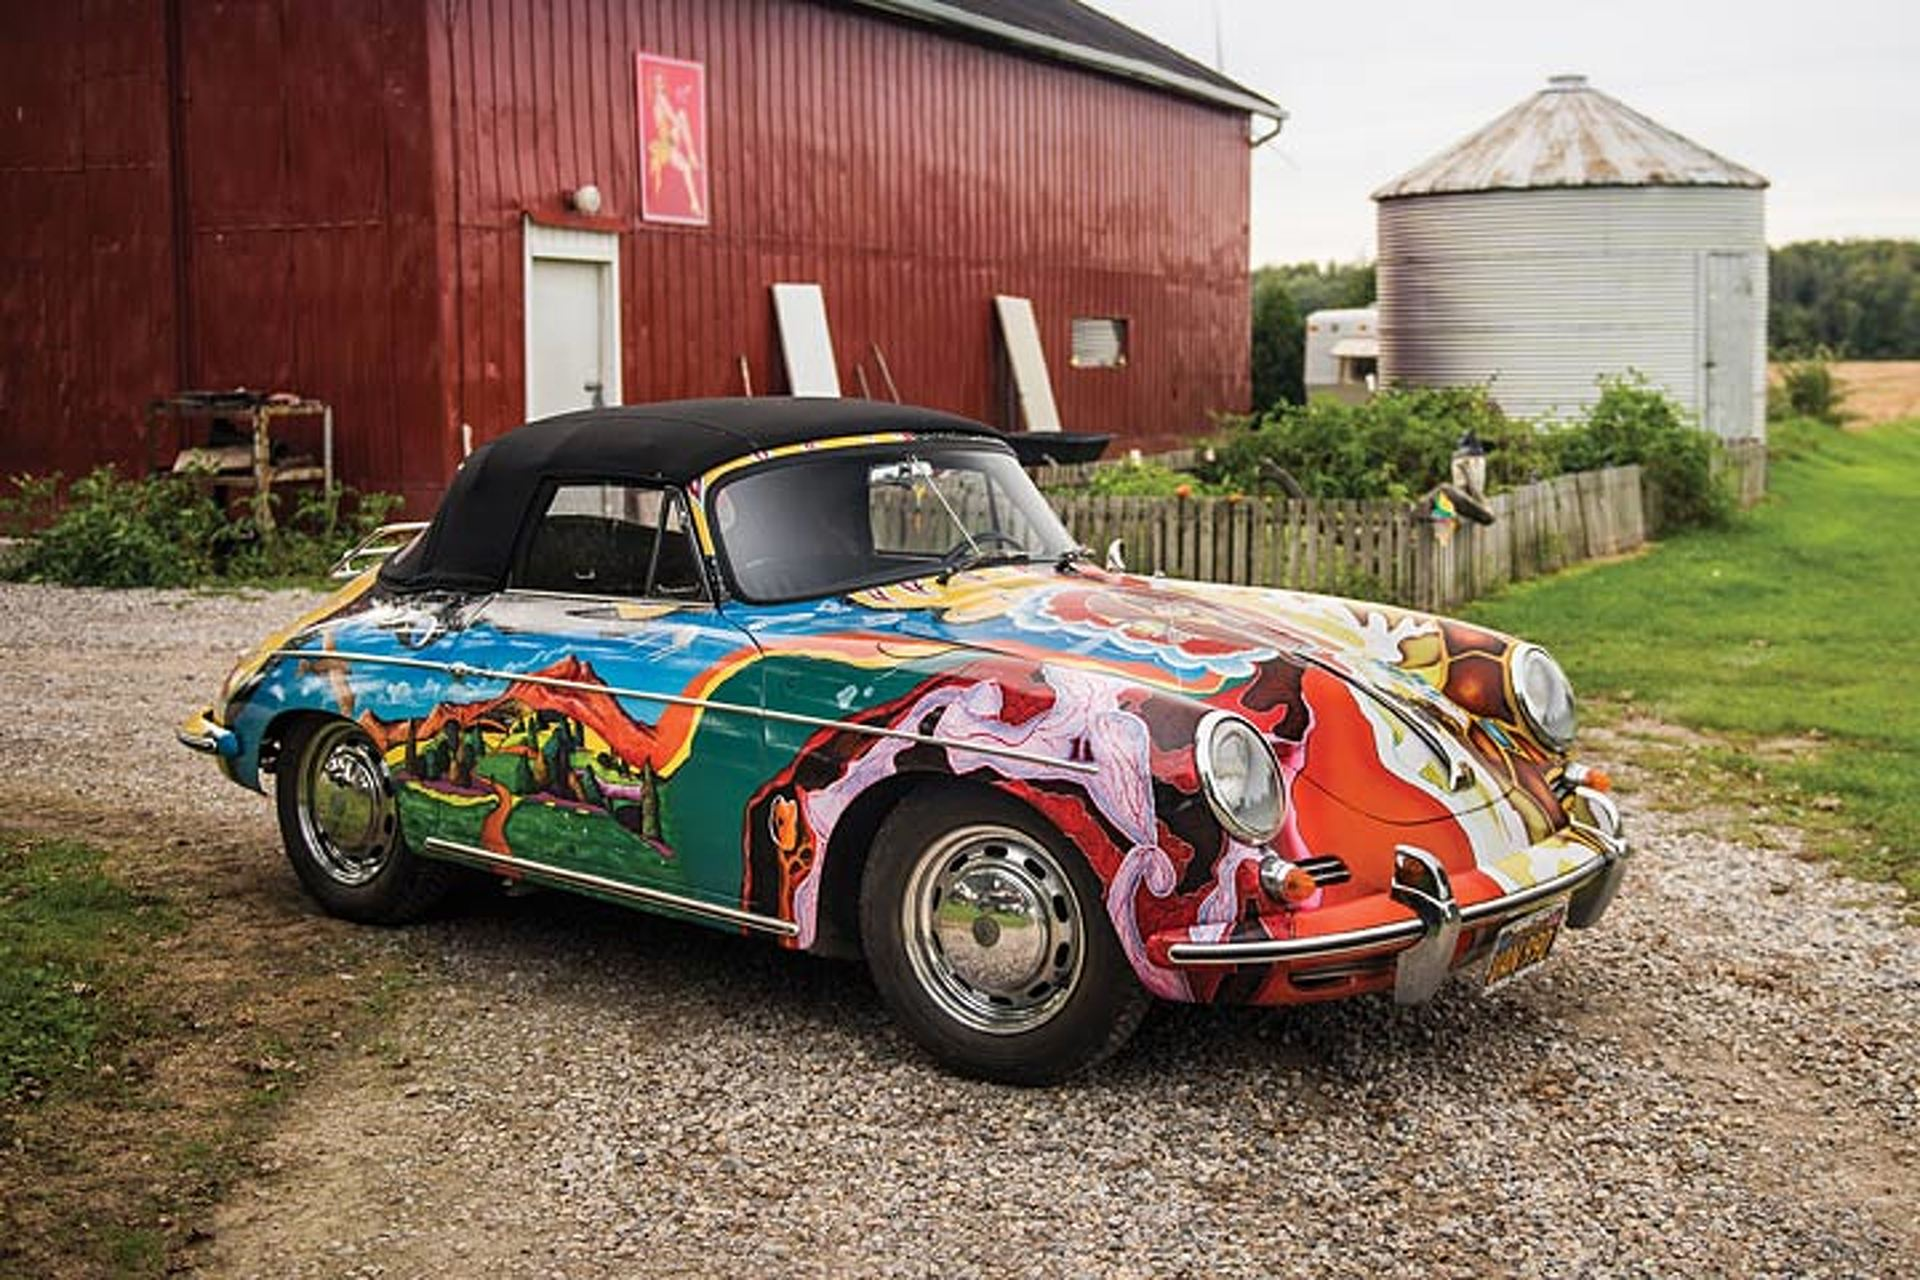 Janis Joplin Porsche Sells for $1.7 Million, Sets Record